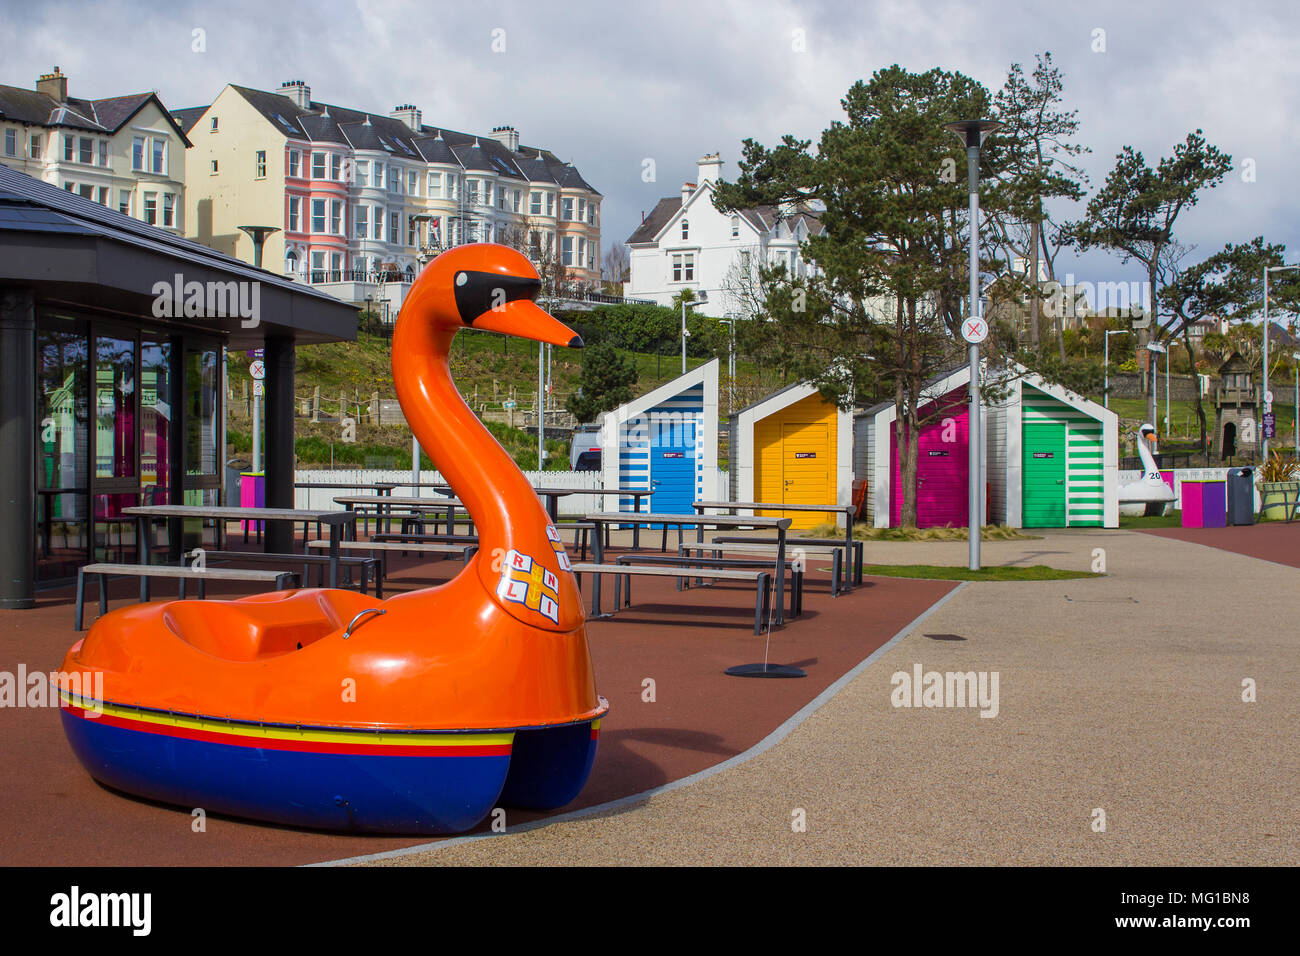 26 April 2018 A bright red swan pedalo used as an R.N.L.I. donation box at the Pickie fun park on the seafront of Bangor County Down Northern Ireland - Stock Image